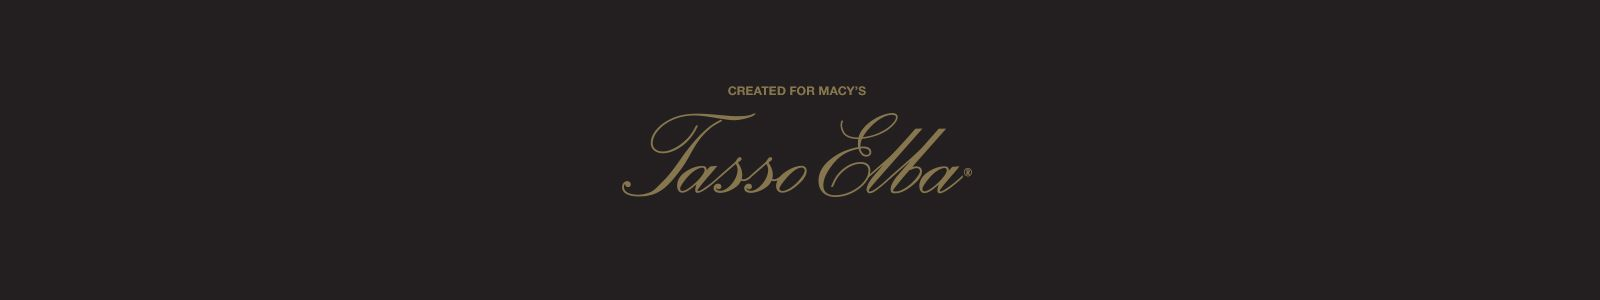 Created for Macy's, Tasso Elba